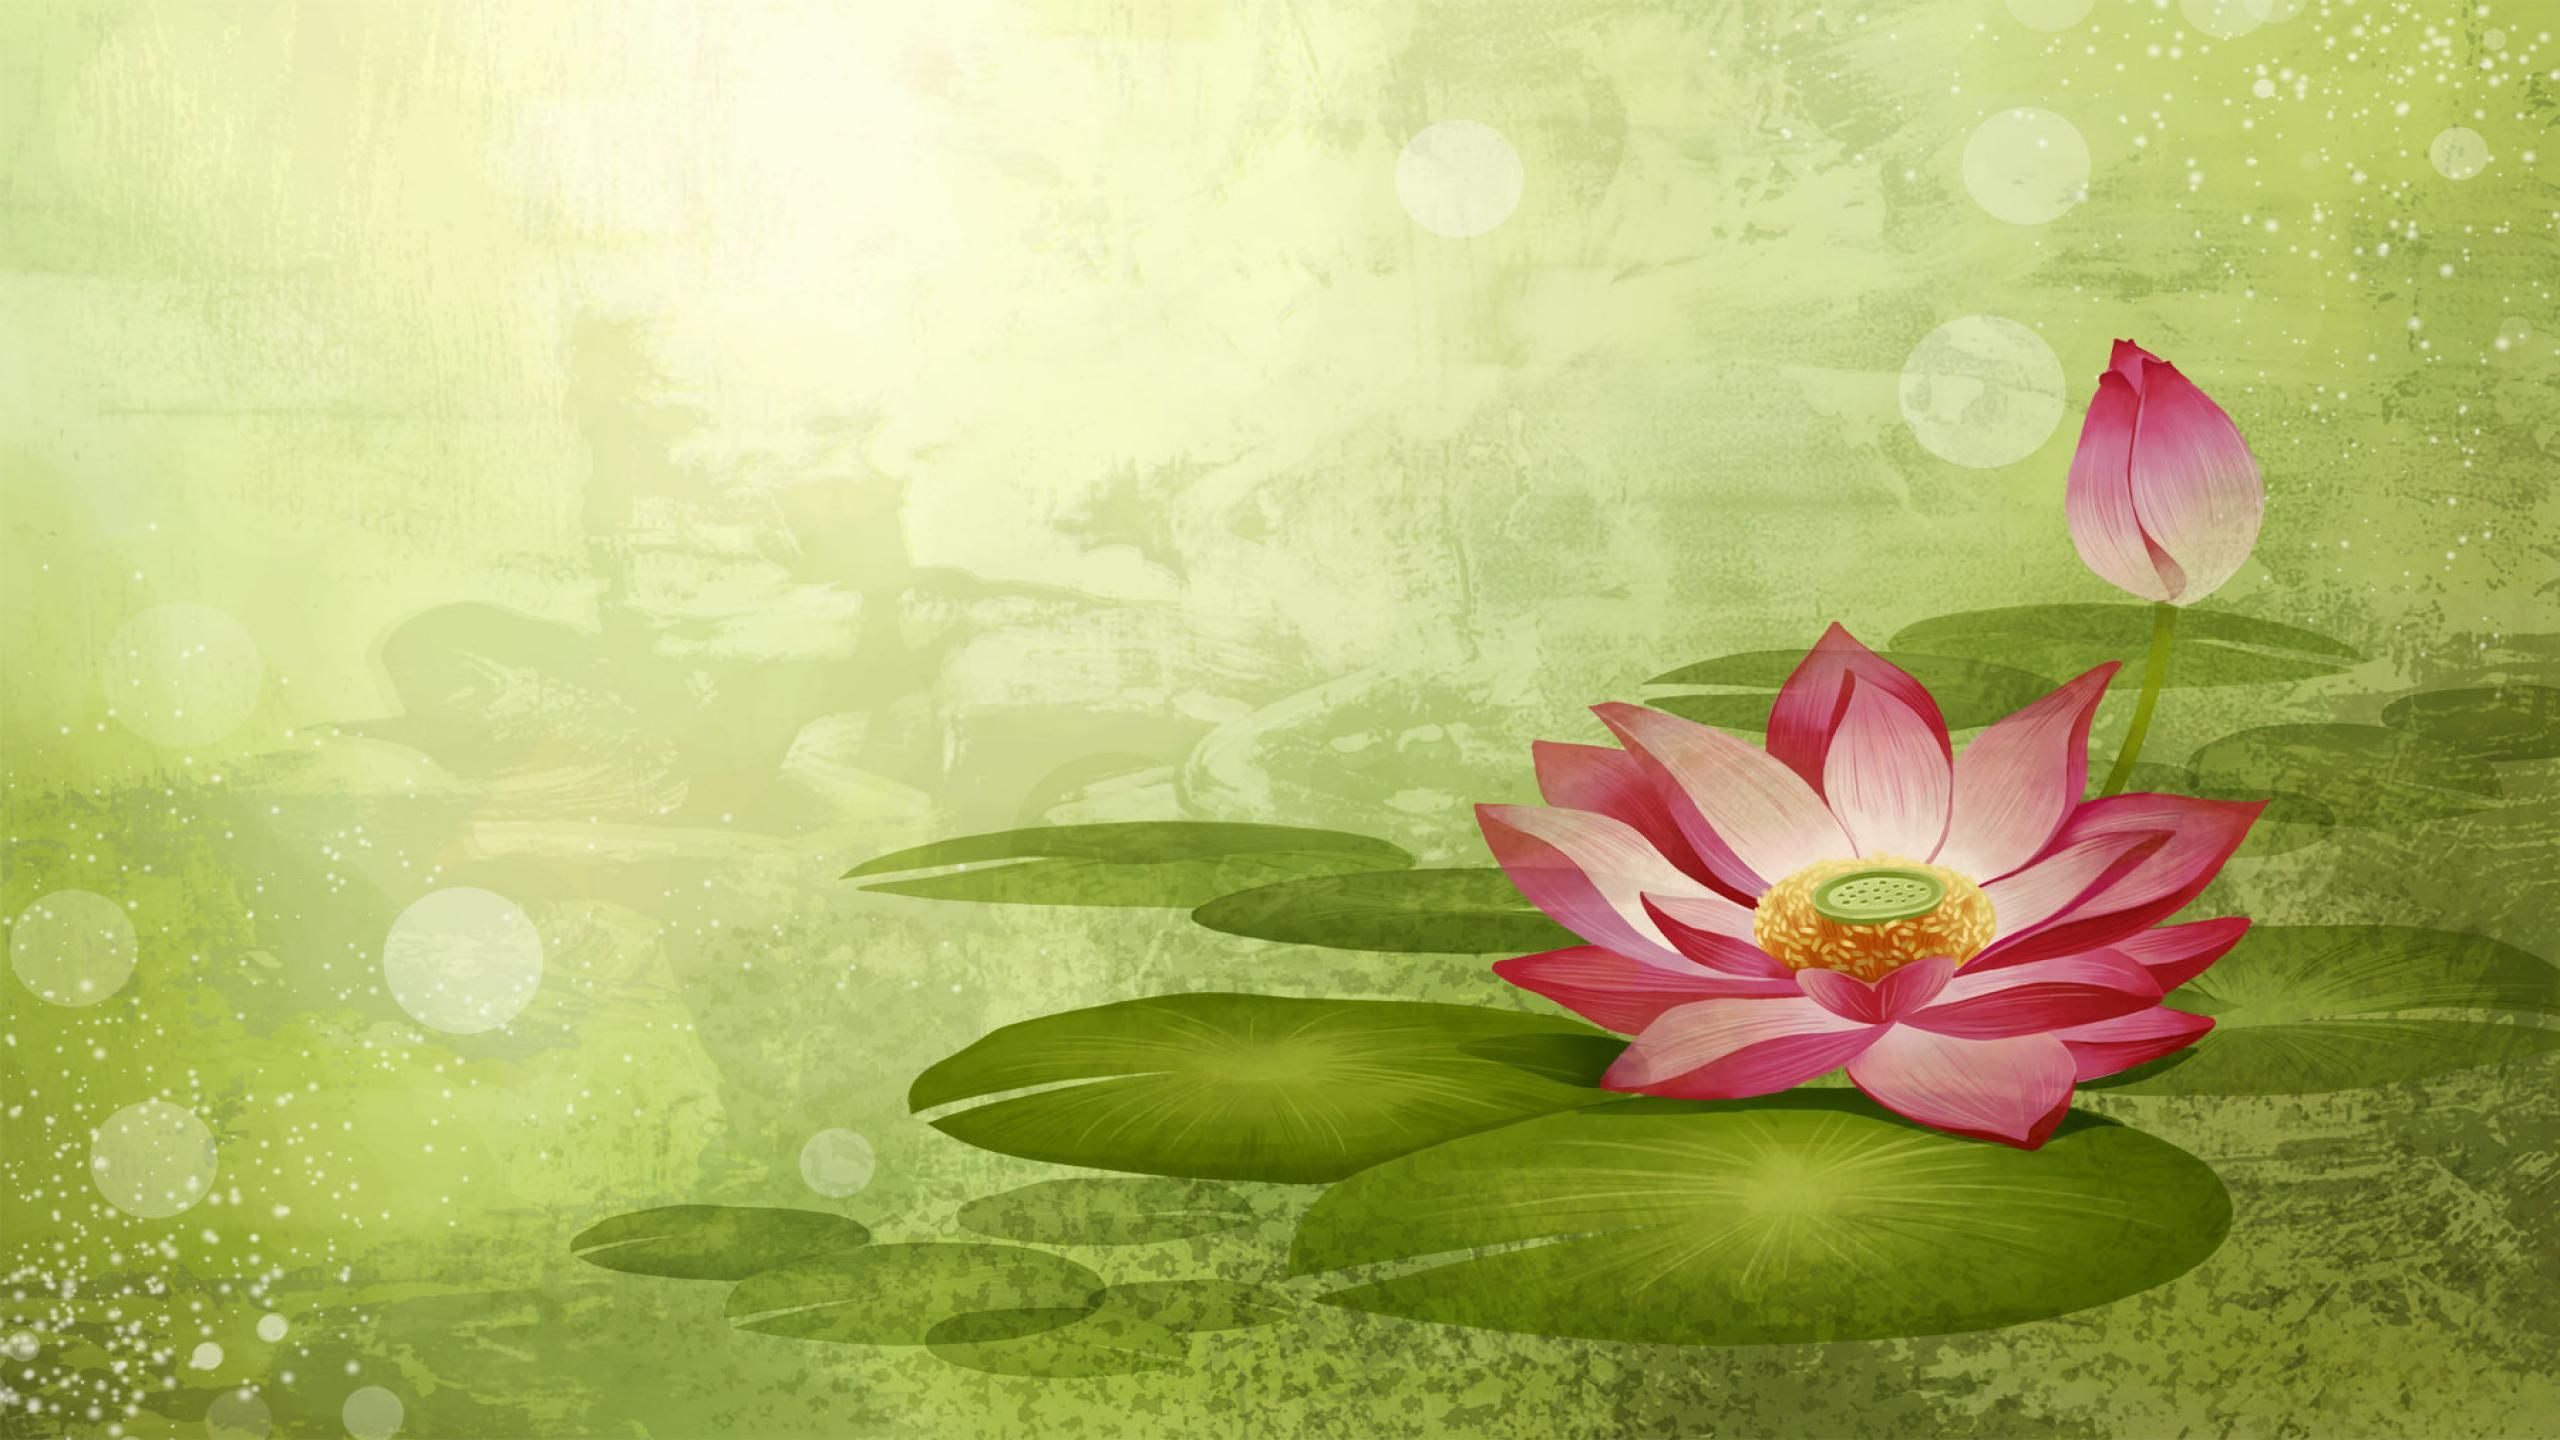 Lotus flower wallpapers home improvements pinterest lotus flower wallpapers mightylinksfo